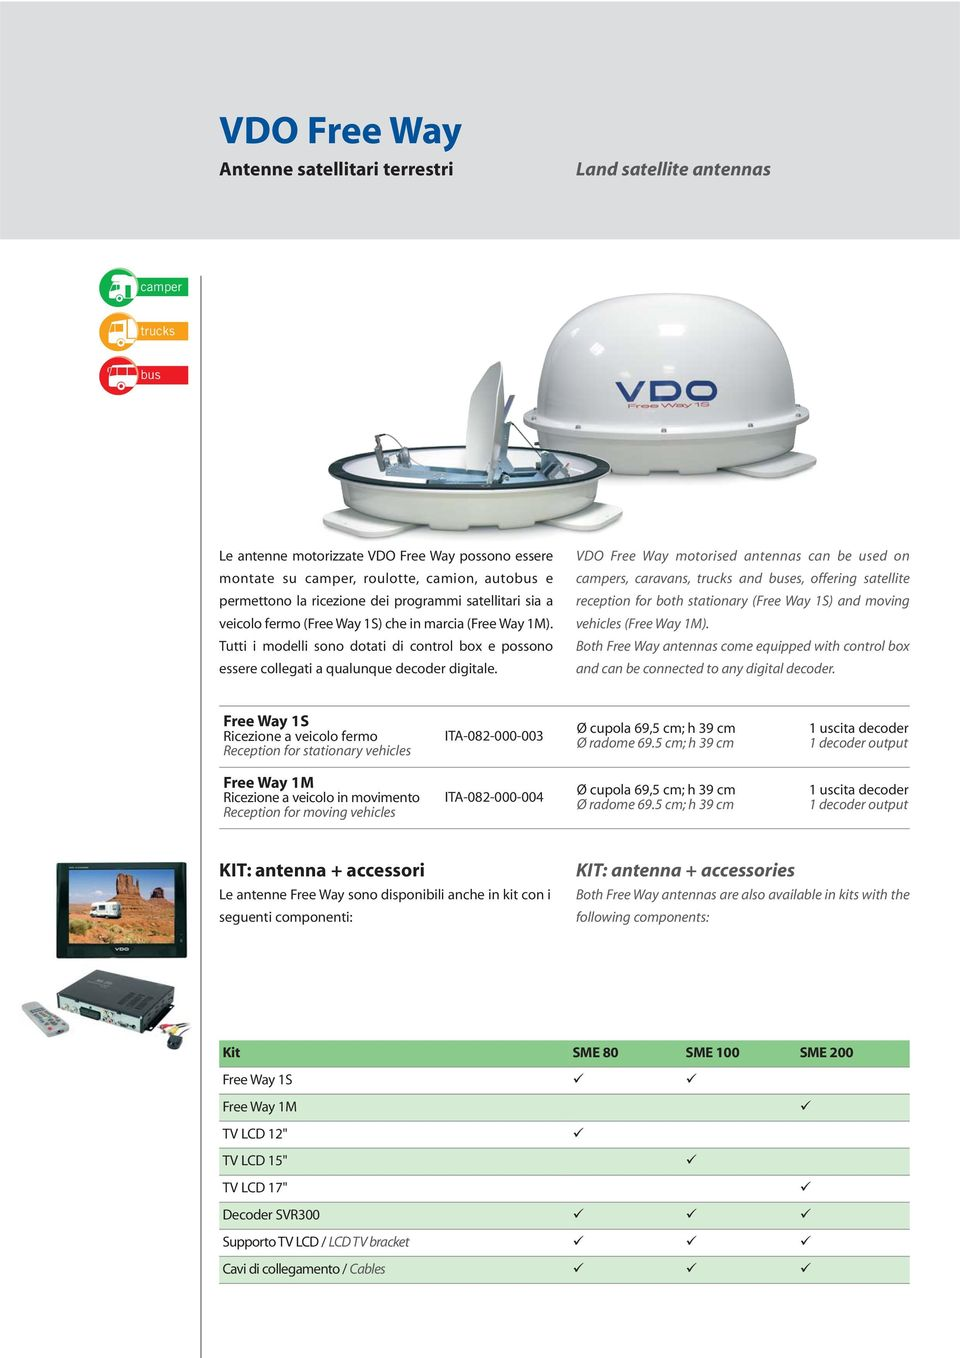 VDO Free Way motorised antennas can be used on campers, caravans, trucks and buses, offering satellite reception for both stationary (Free Way 1S) and moving vehicles (Free Way 1M).